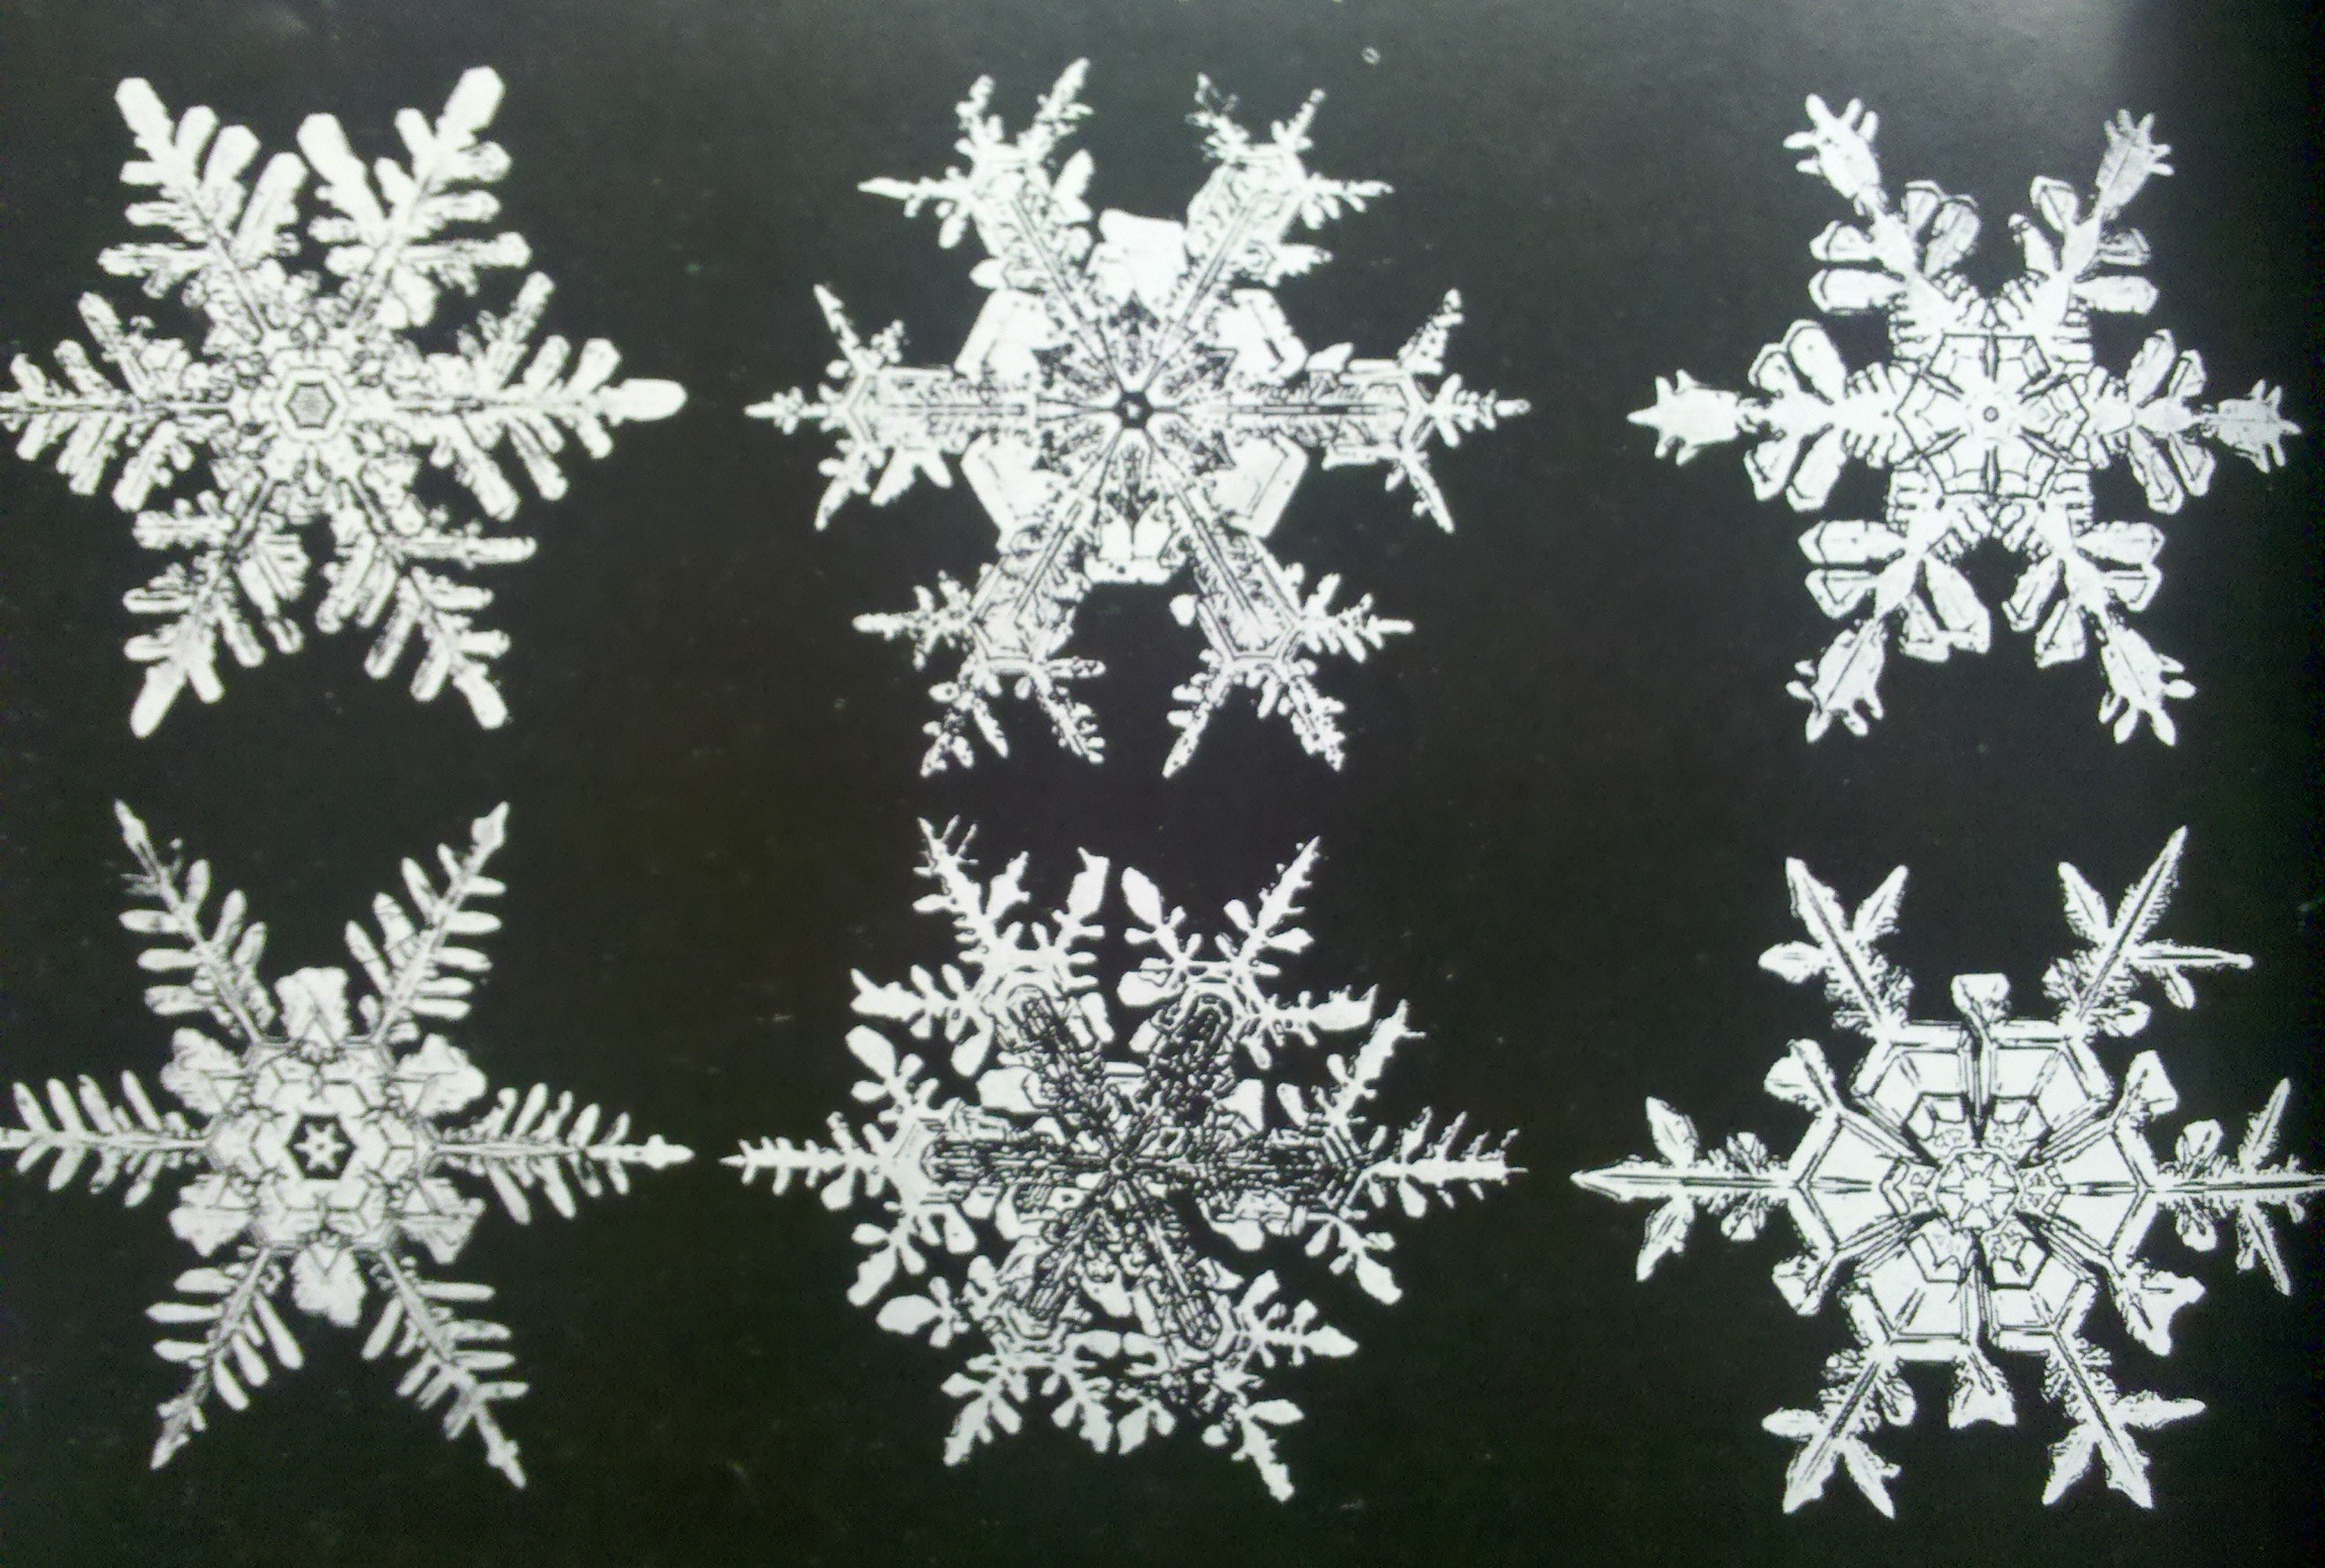 snowflakes archive mary book azarian martin photographs briggs in snowflake dp pictorial jacqueline dover bentley ac